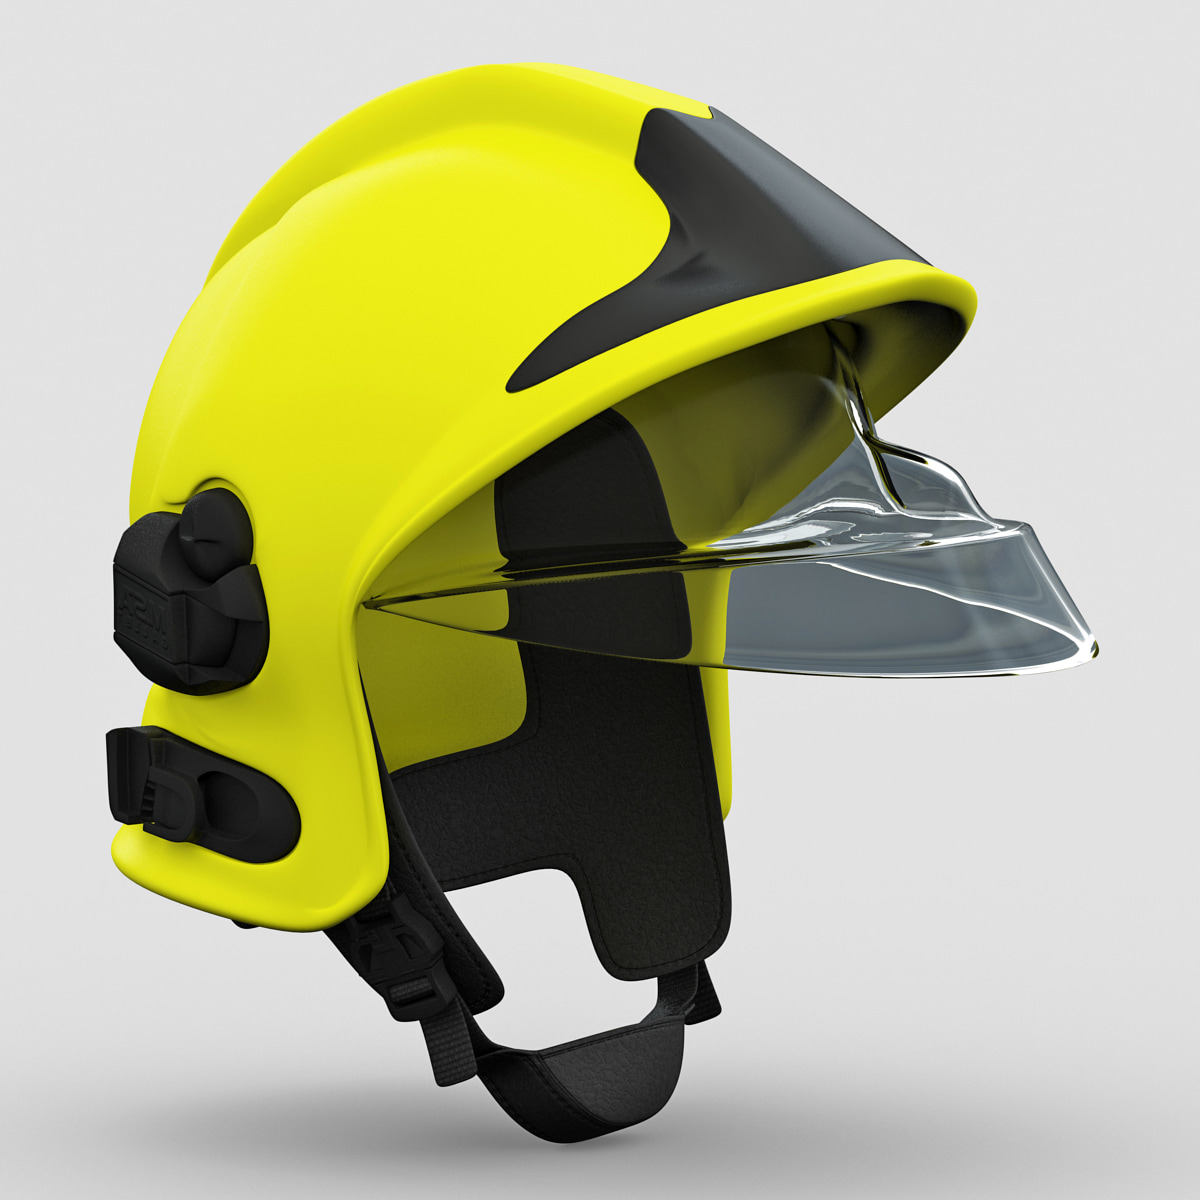 Firefighter_Helmet_V4_001.jpg